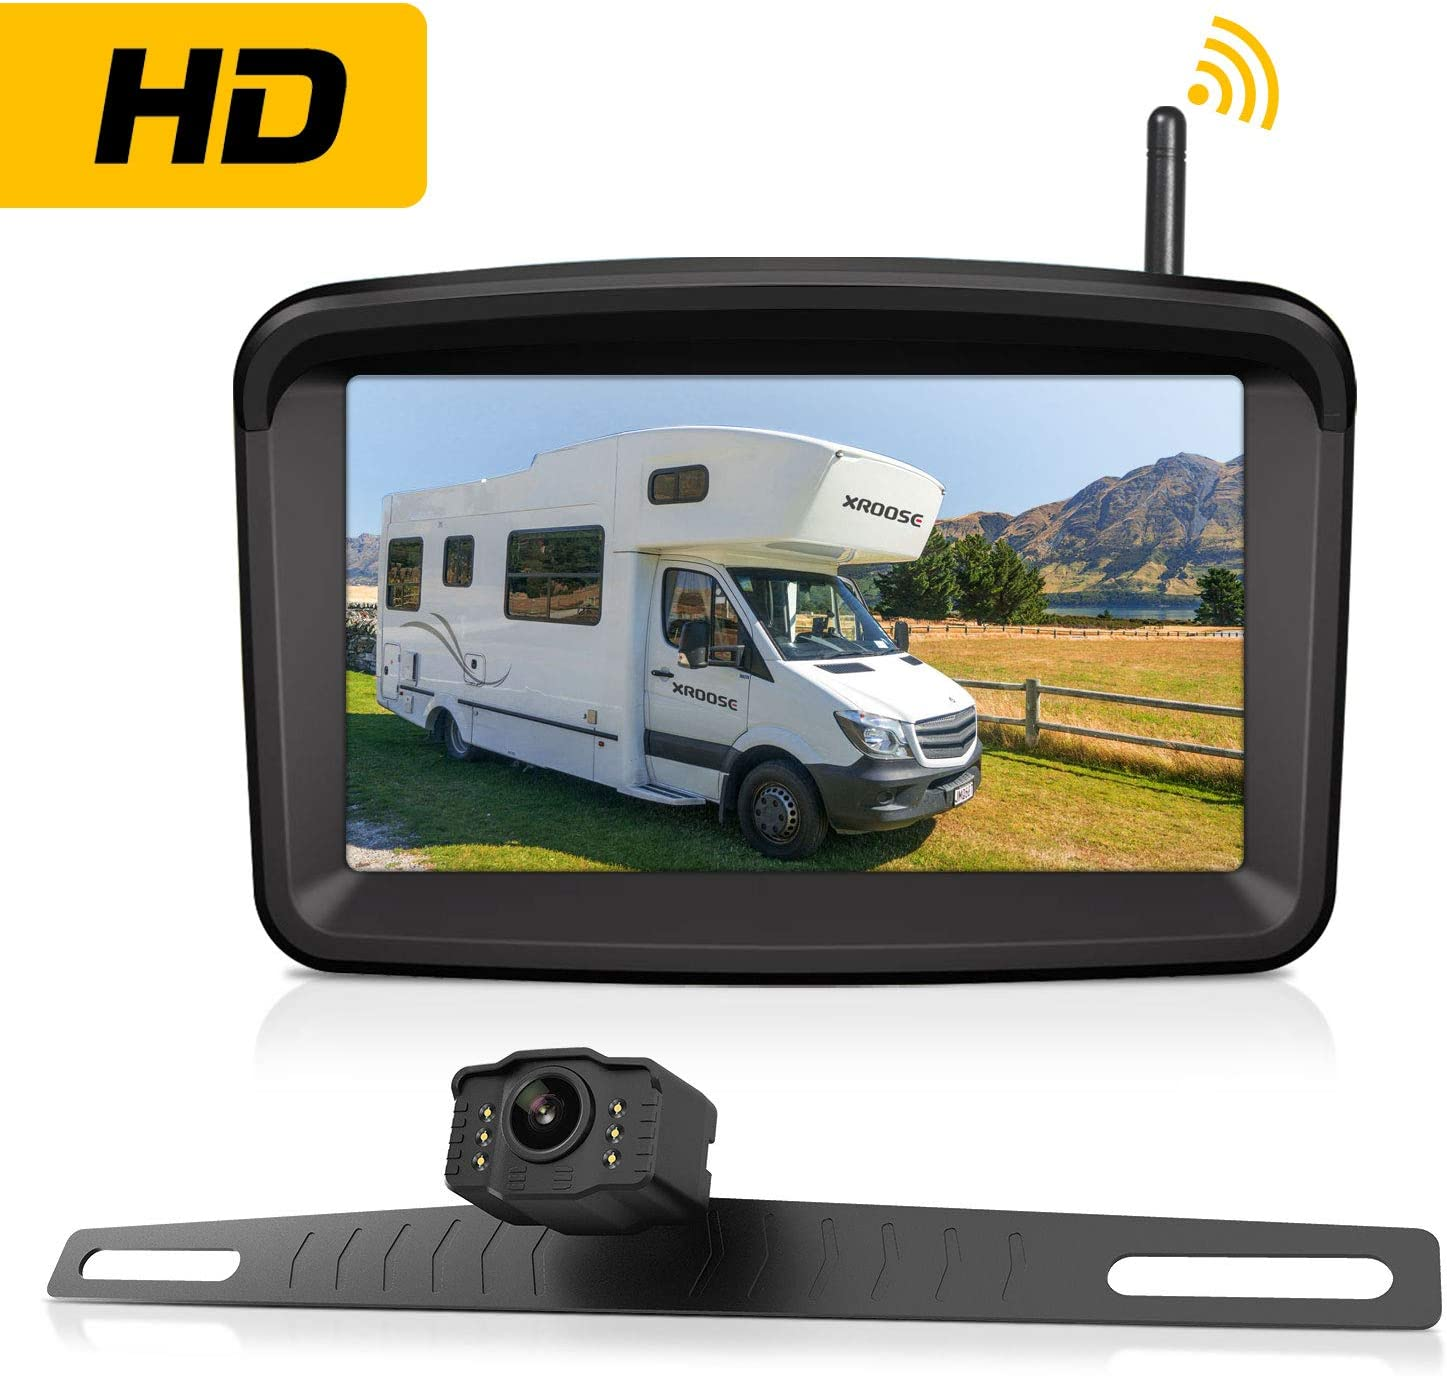 "Wireless Backup Camera with 5"" Monitor for Car"